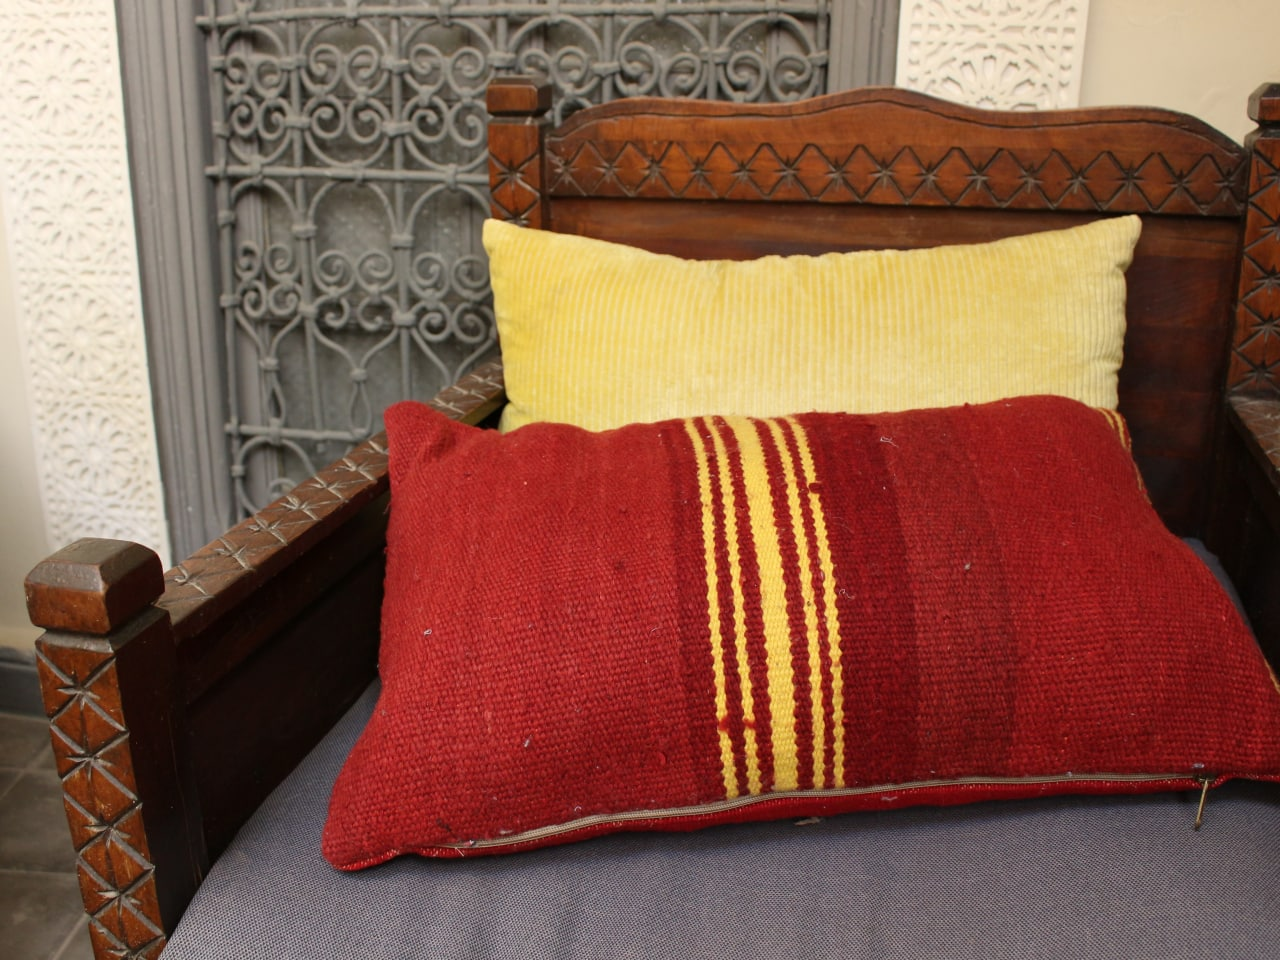 Moroccan pillow.